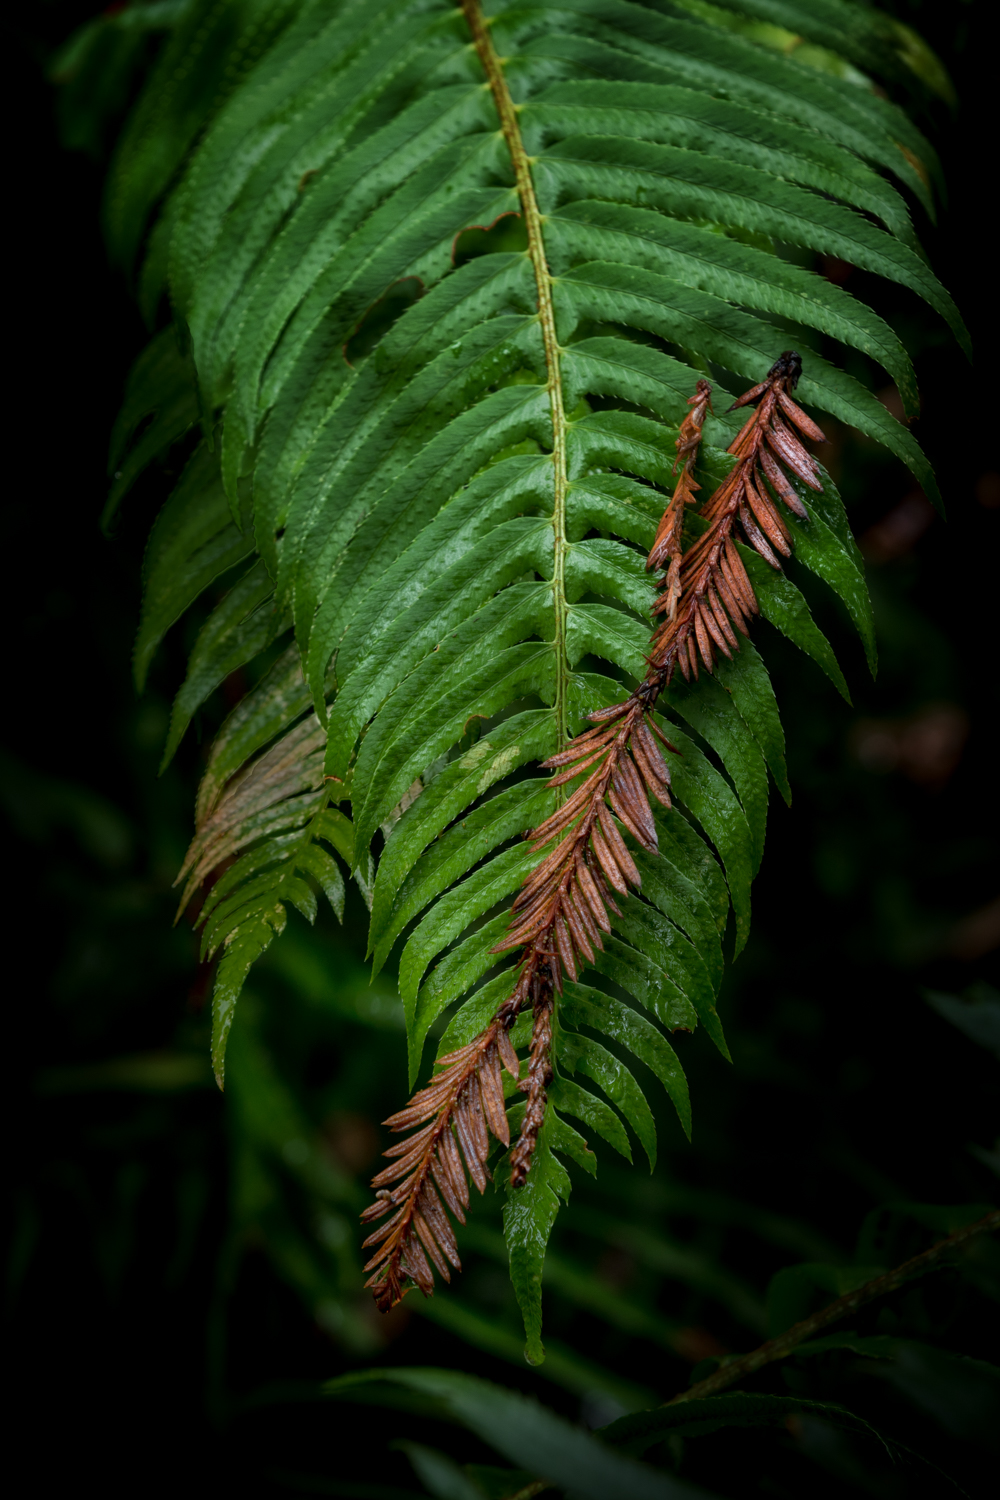 Embrace of Ancients  The redwood twig provided shade for the fern. Both are remnants of an ancient world. I like the contrast of the brown twig with the green fern. All the lines in the twig and the fern leaf that mirror each other, are nice too.